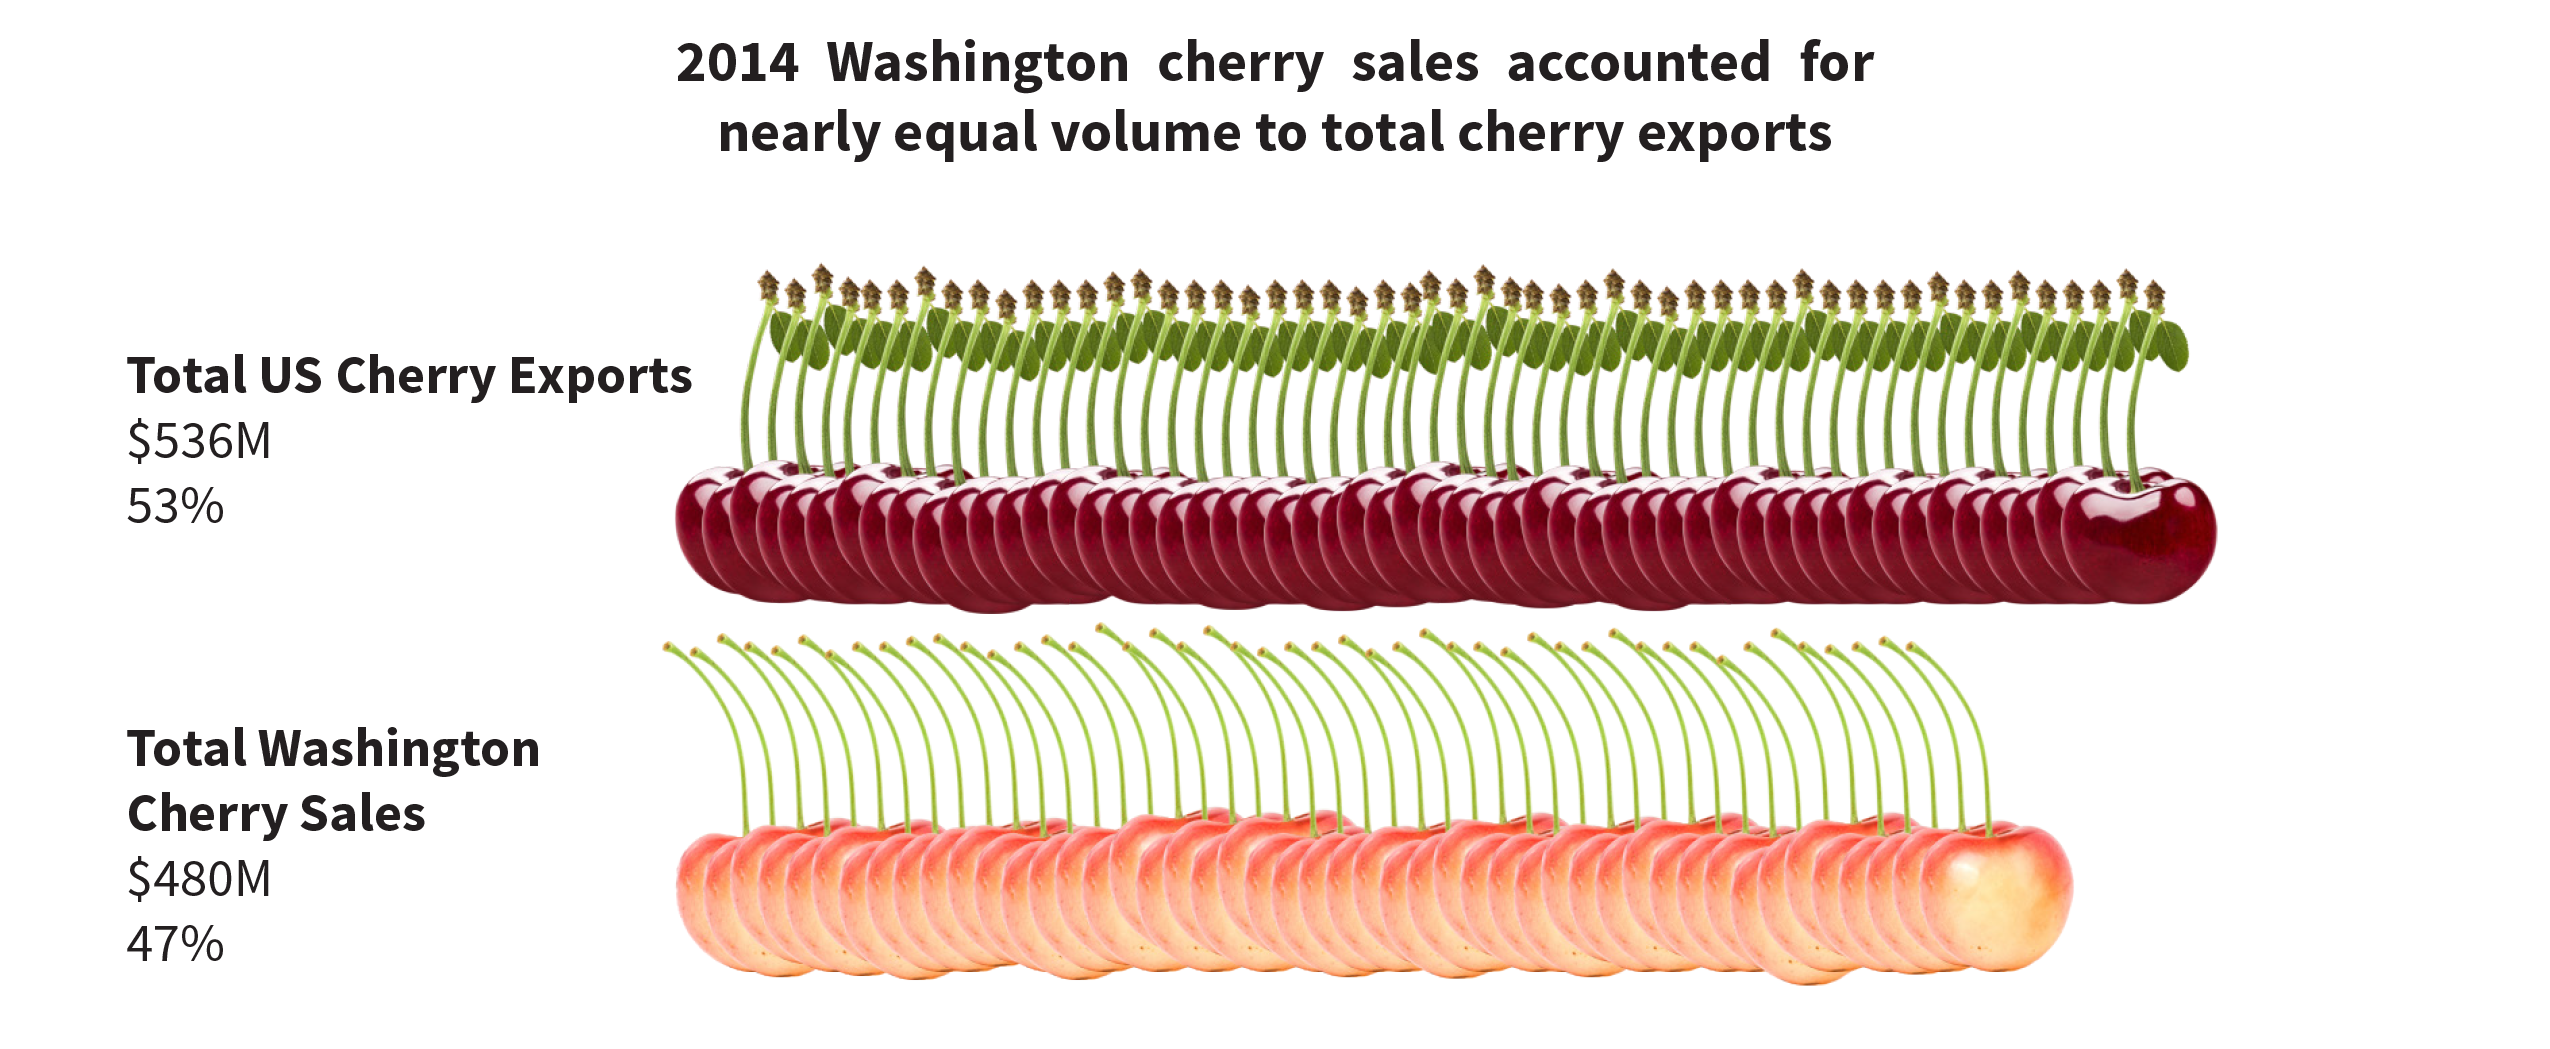 A bar chart made up entirely of cherries